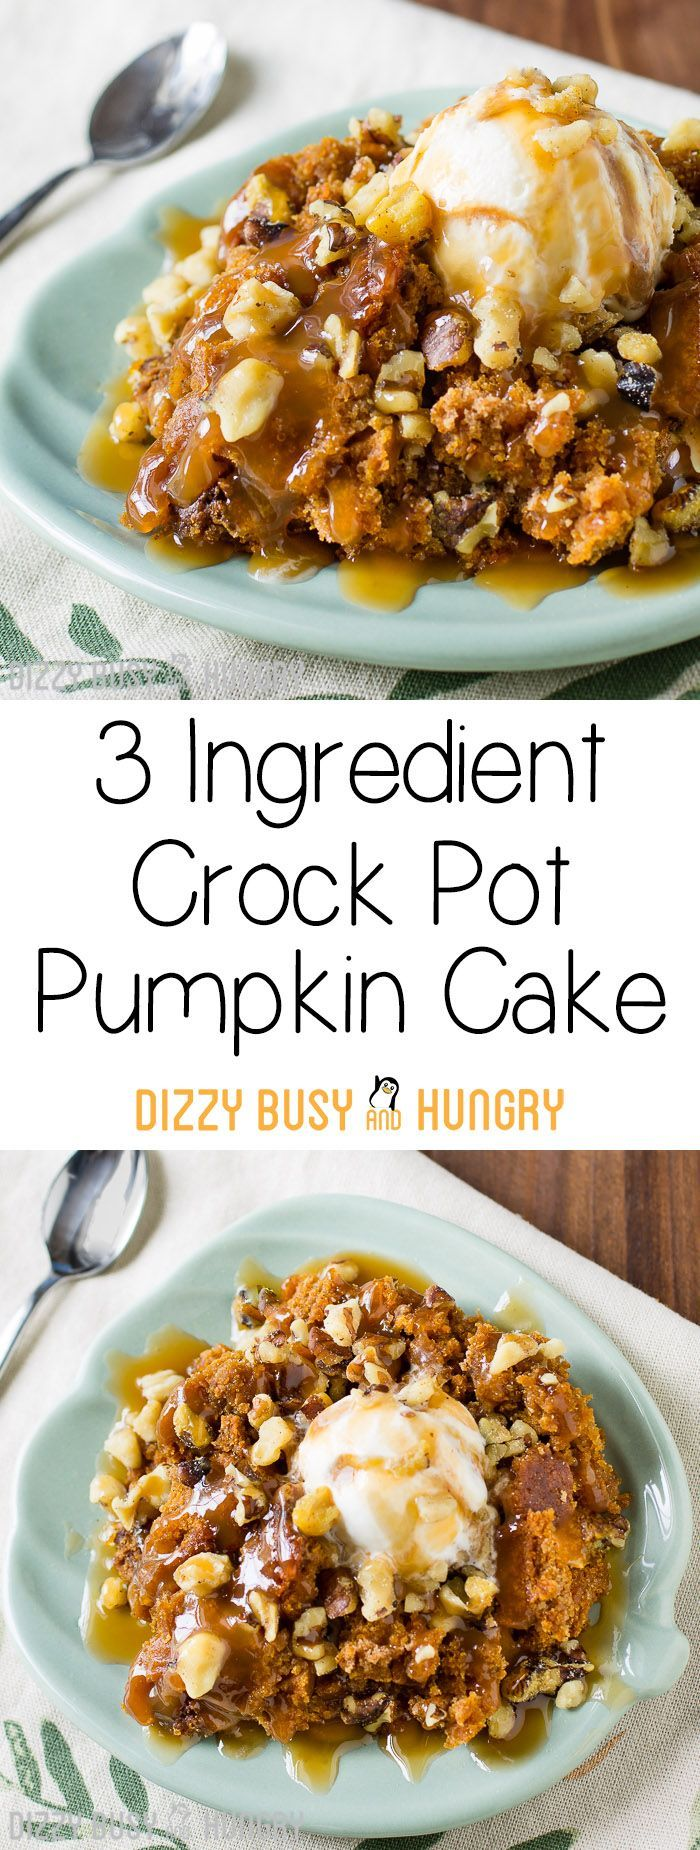 3 Ingredient Crock Pot Pumpkin Cake  Dizzy Busy and Hungry Recipes